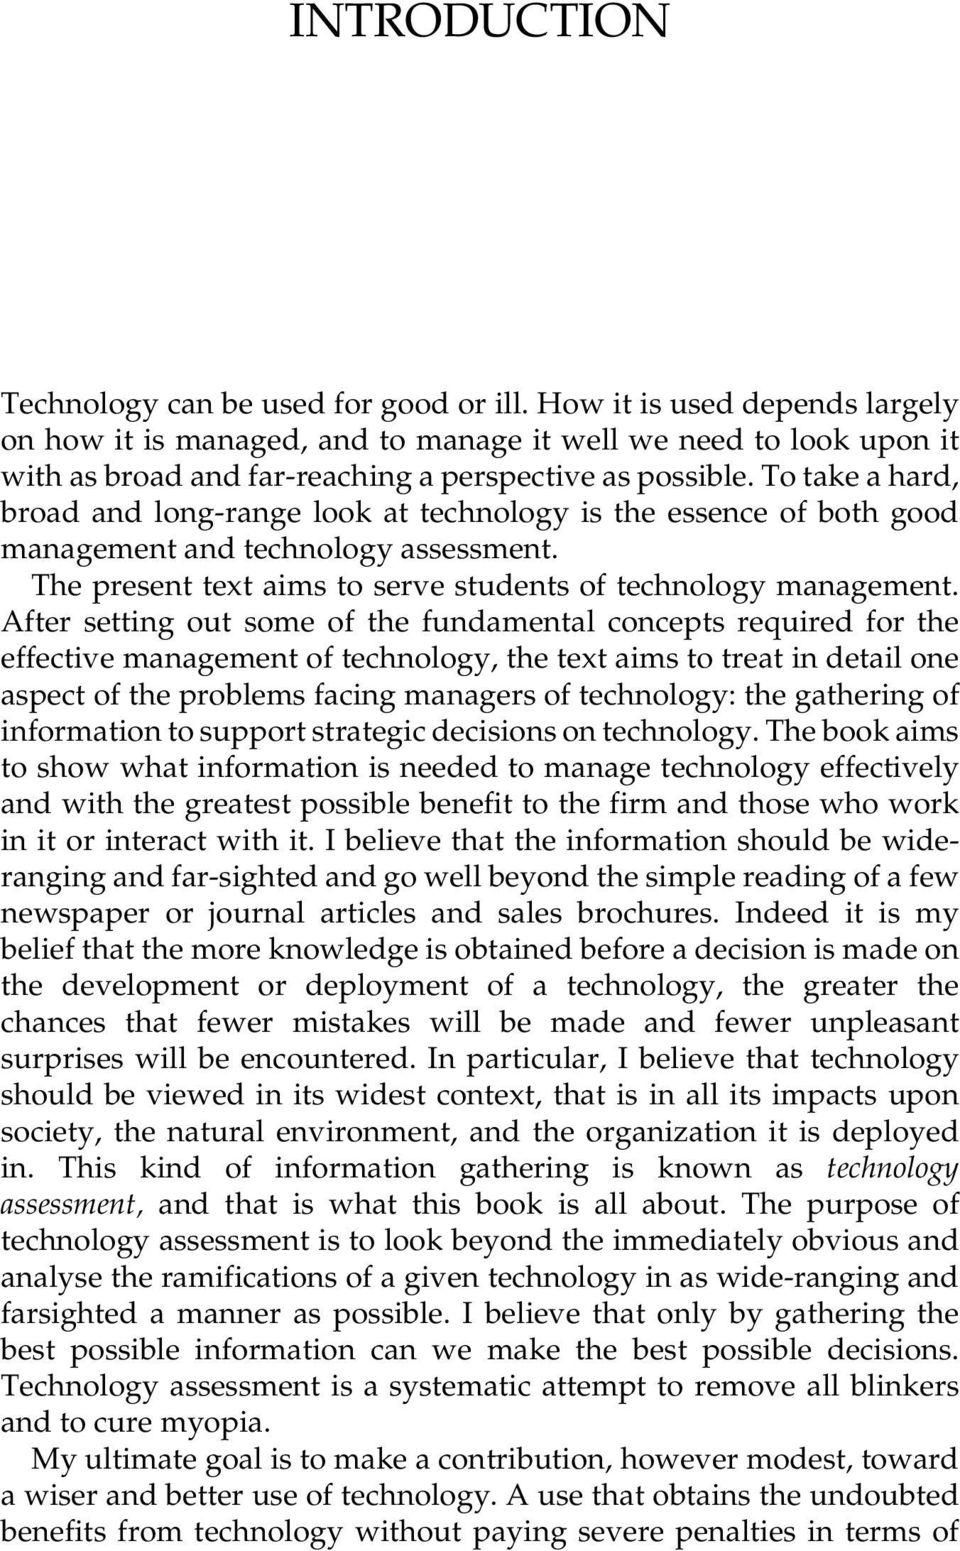 To take a hard, broad and long-range look at technology is the essence of both good management and technology assessment. The present text aims to serve students of technology management.